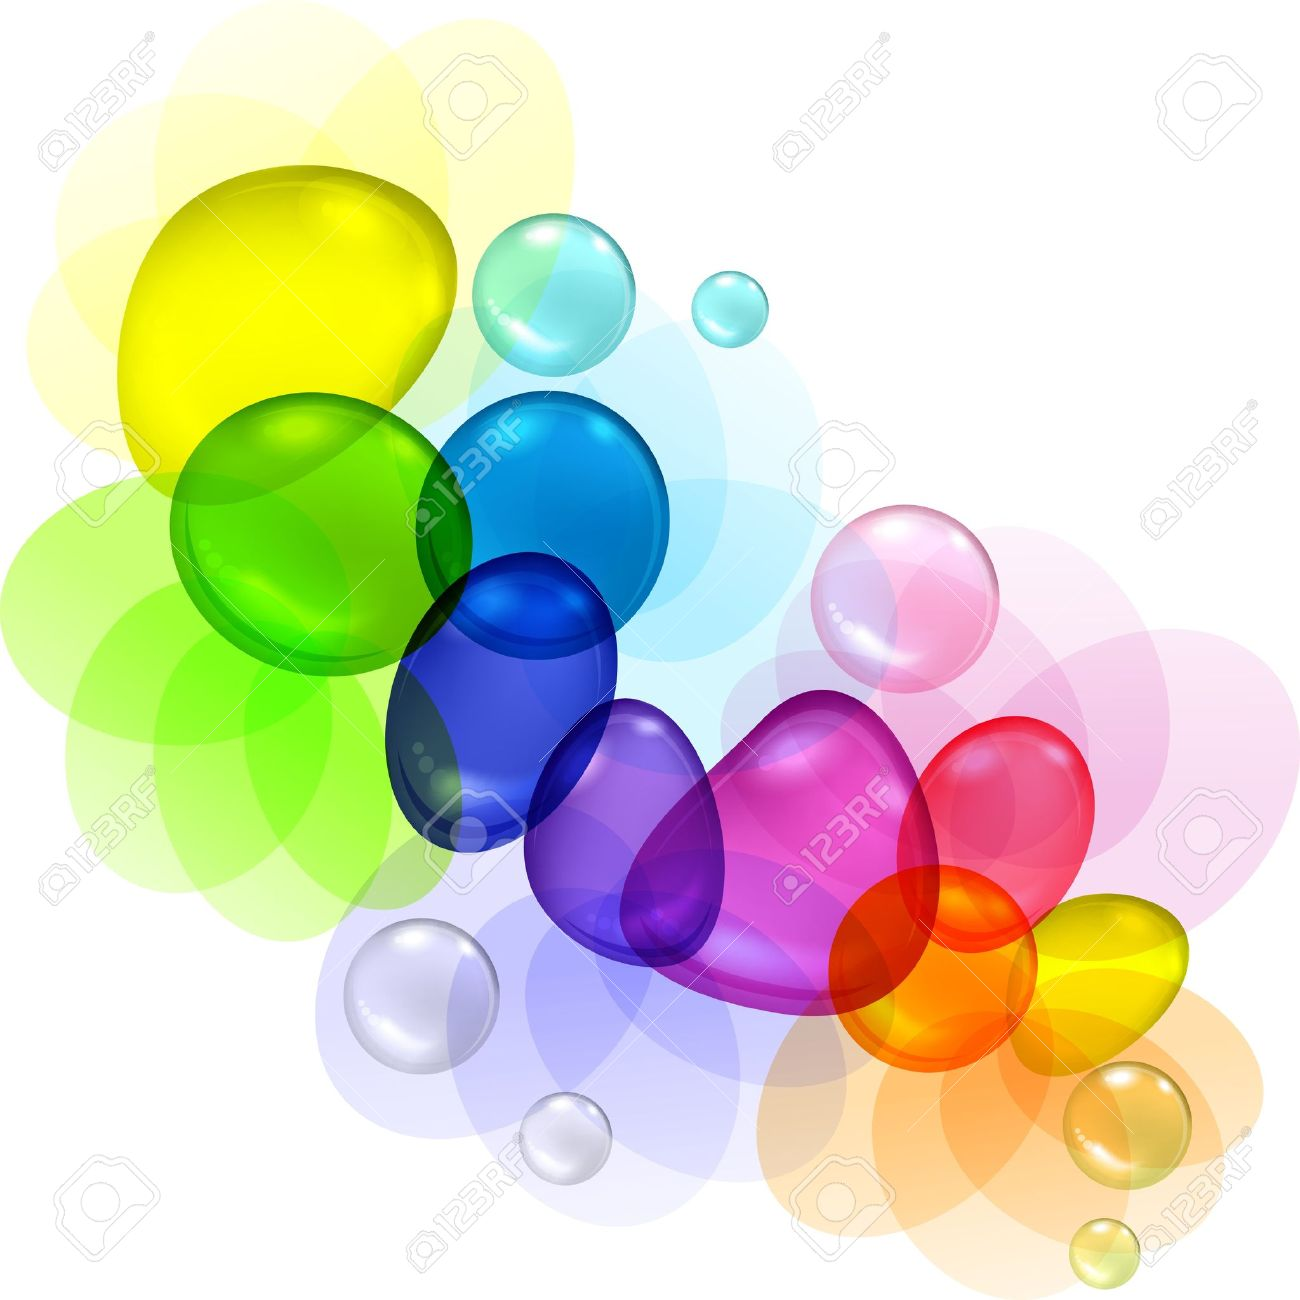 Color Abstract With Transparent Bubbles And Drops Royalty Free.